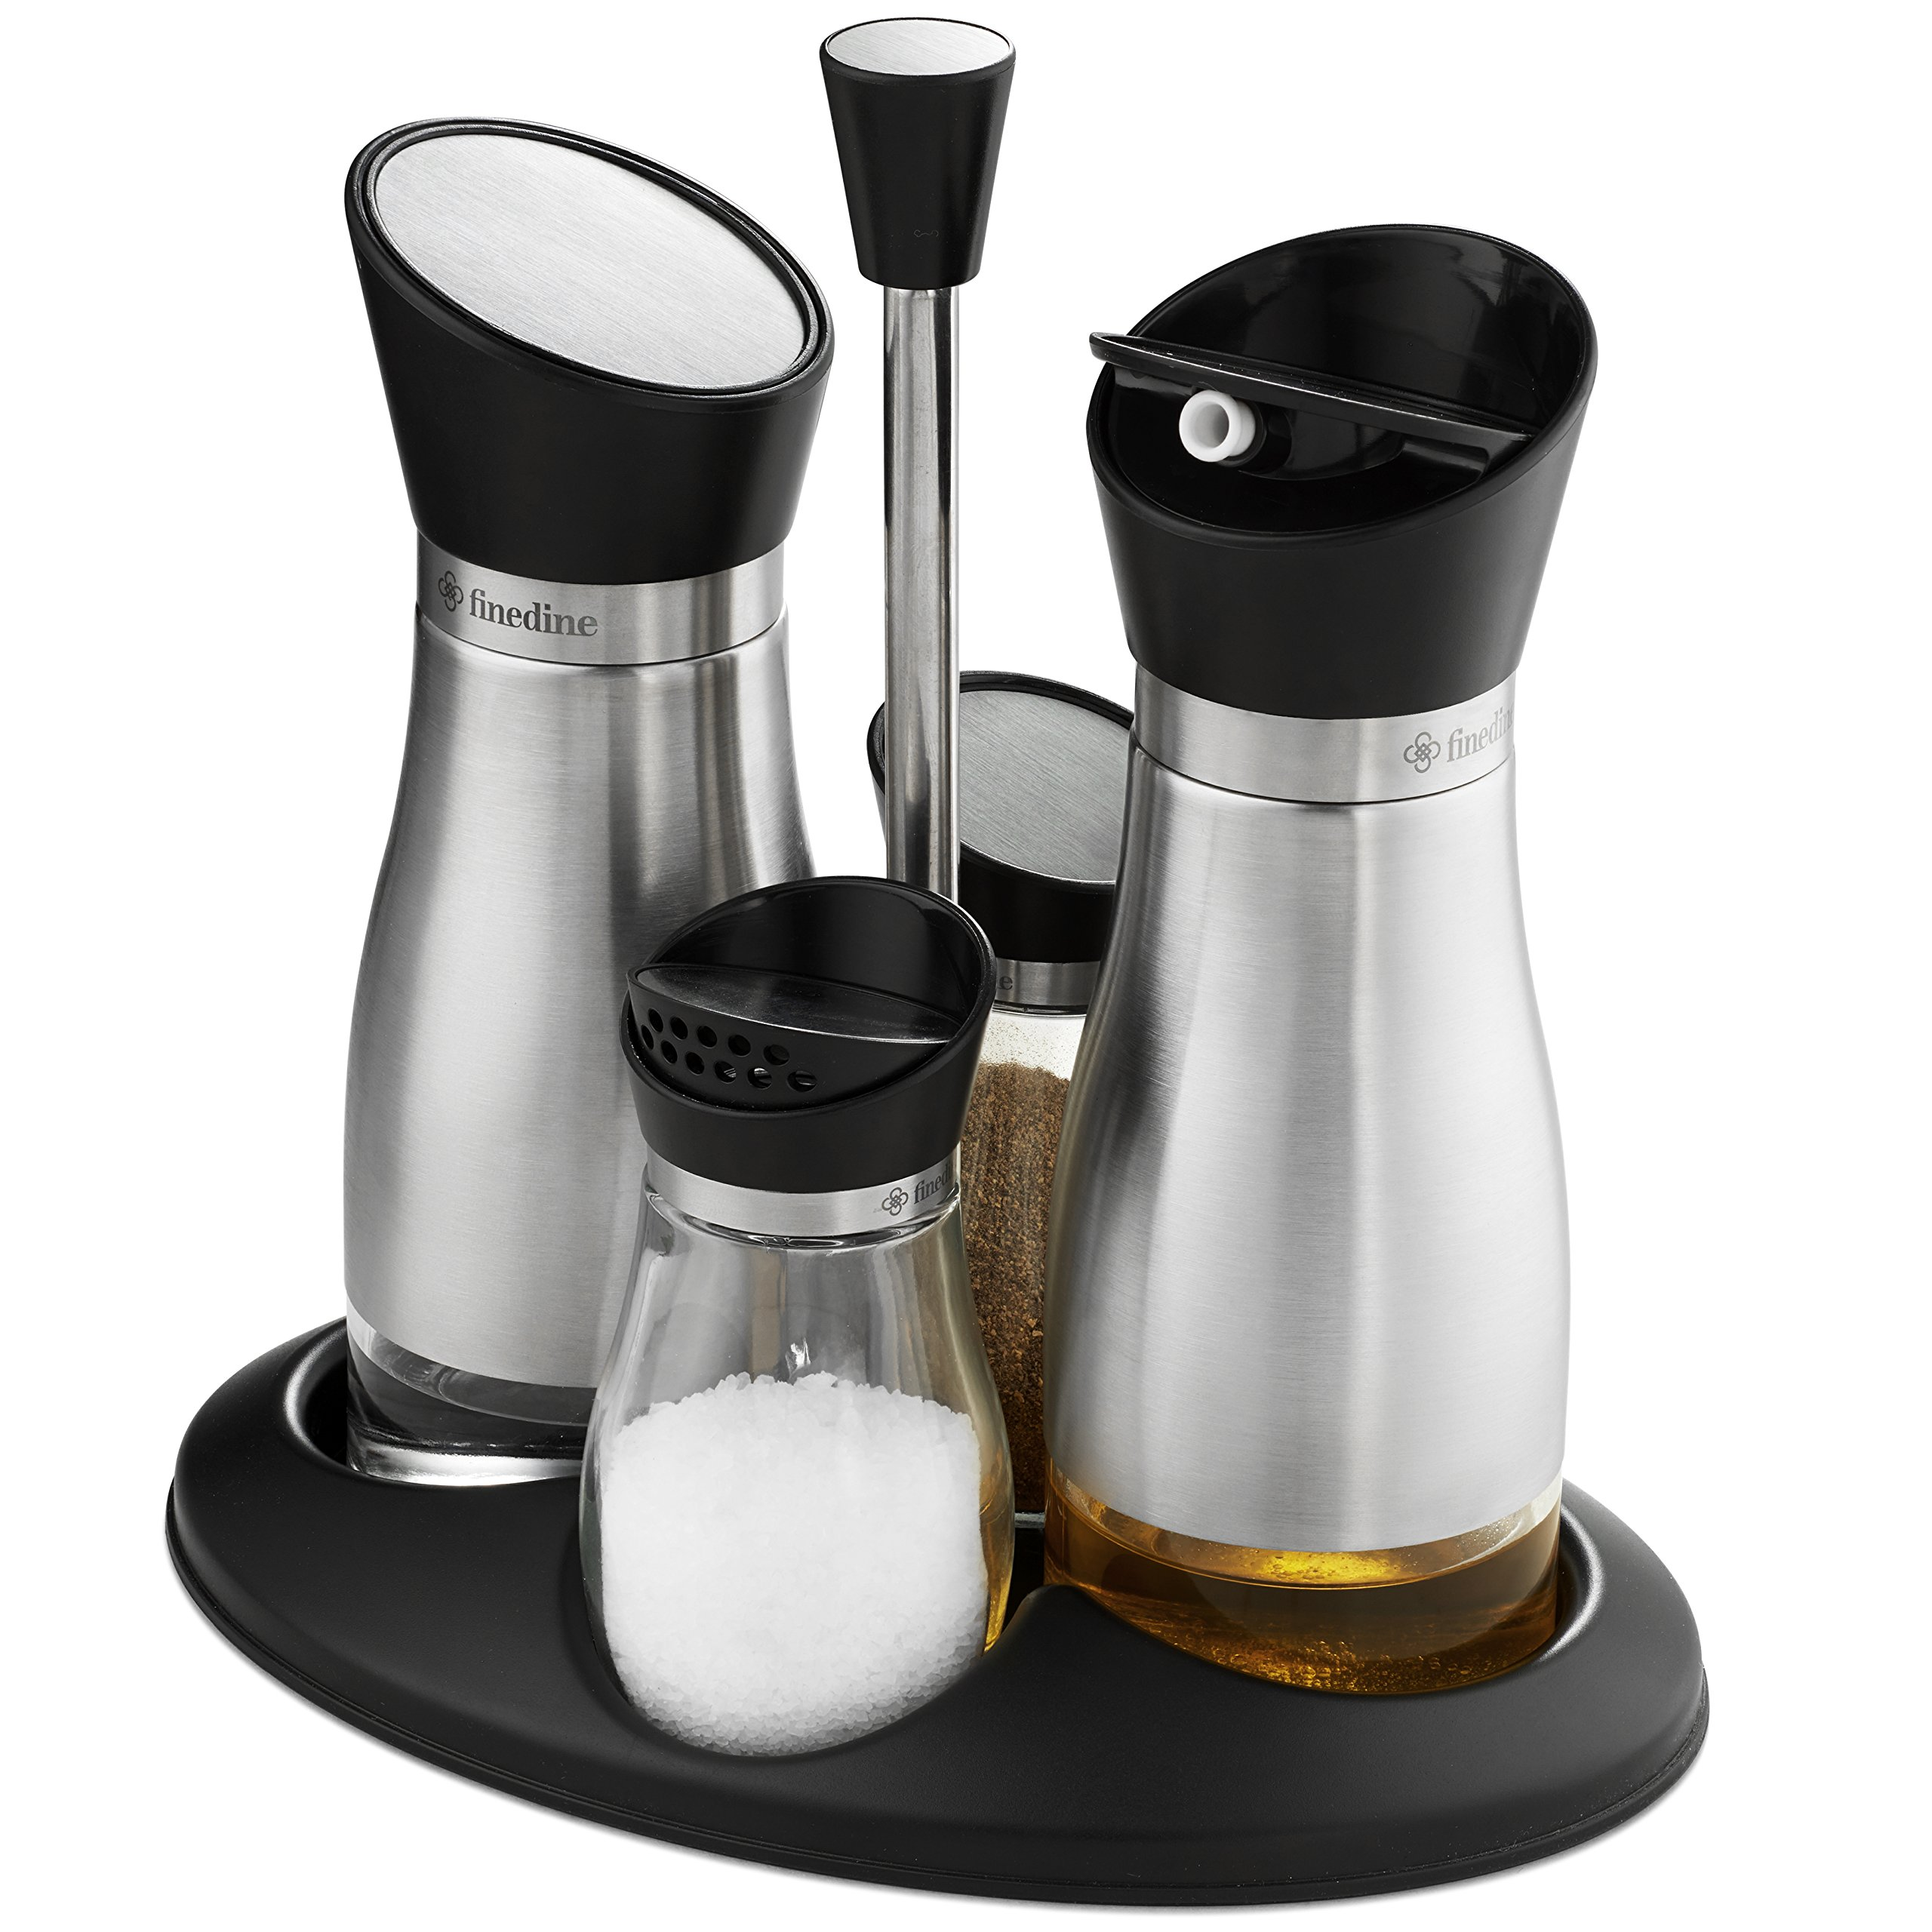 Oil and Vinegar Salt & Pepper Cruet Set - 5 Piece - Durable Glass Stainless Steel Bottle Set with Caddy Twist Open/Close Tops, Capacity; Oil and Vinegar Dispenser 10 Oz. Salt and Pepper Shakers 3.5 oz